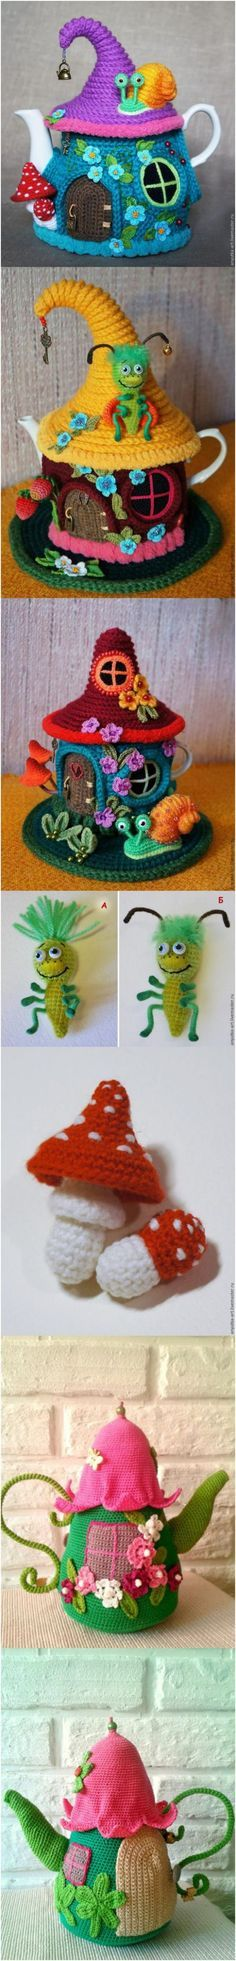 How To Make Knitted Fairy House Teapot Cozie | The WHOot